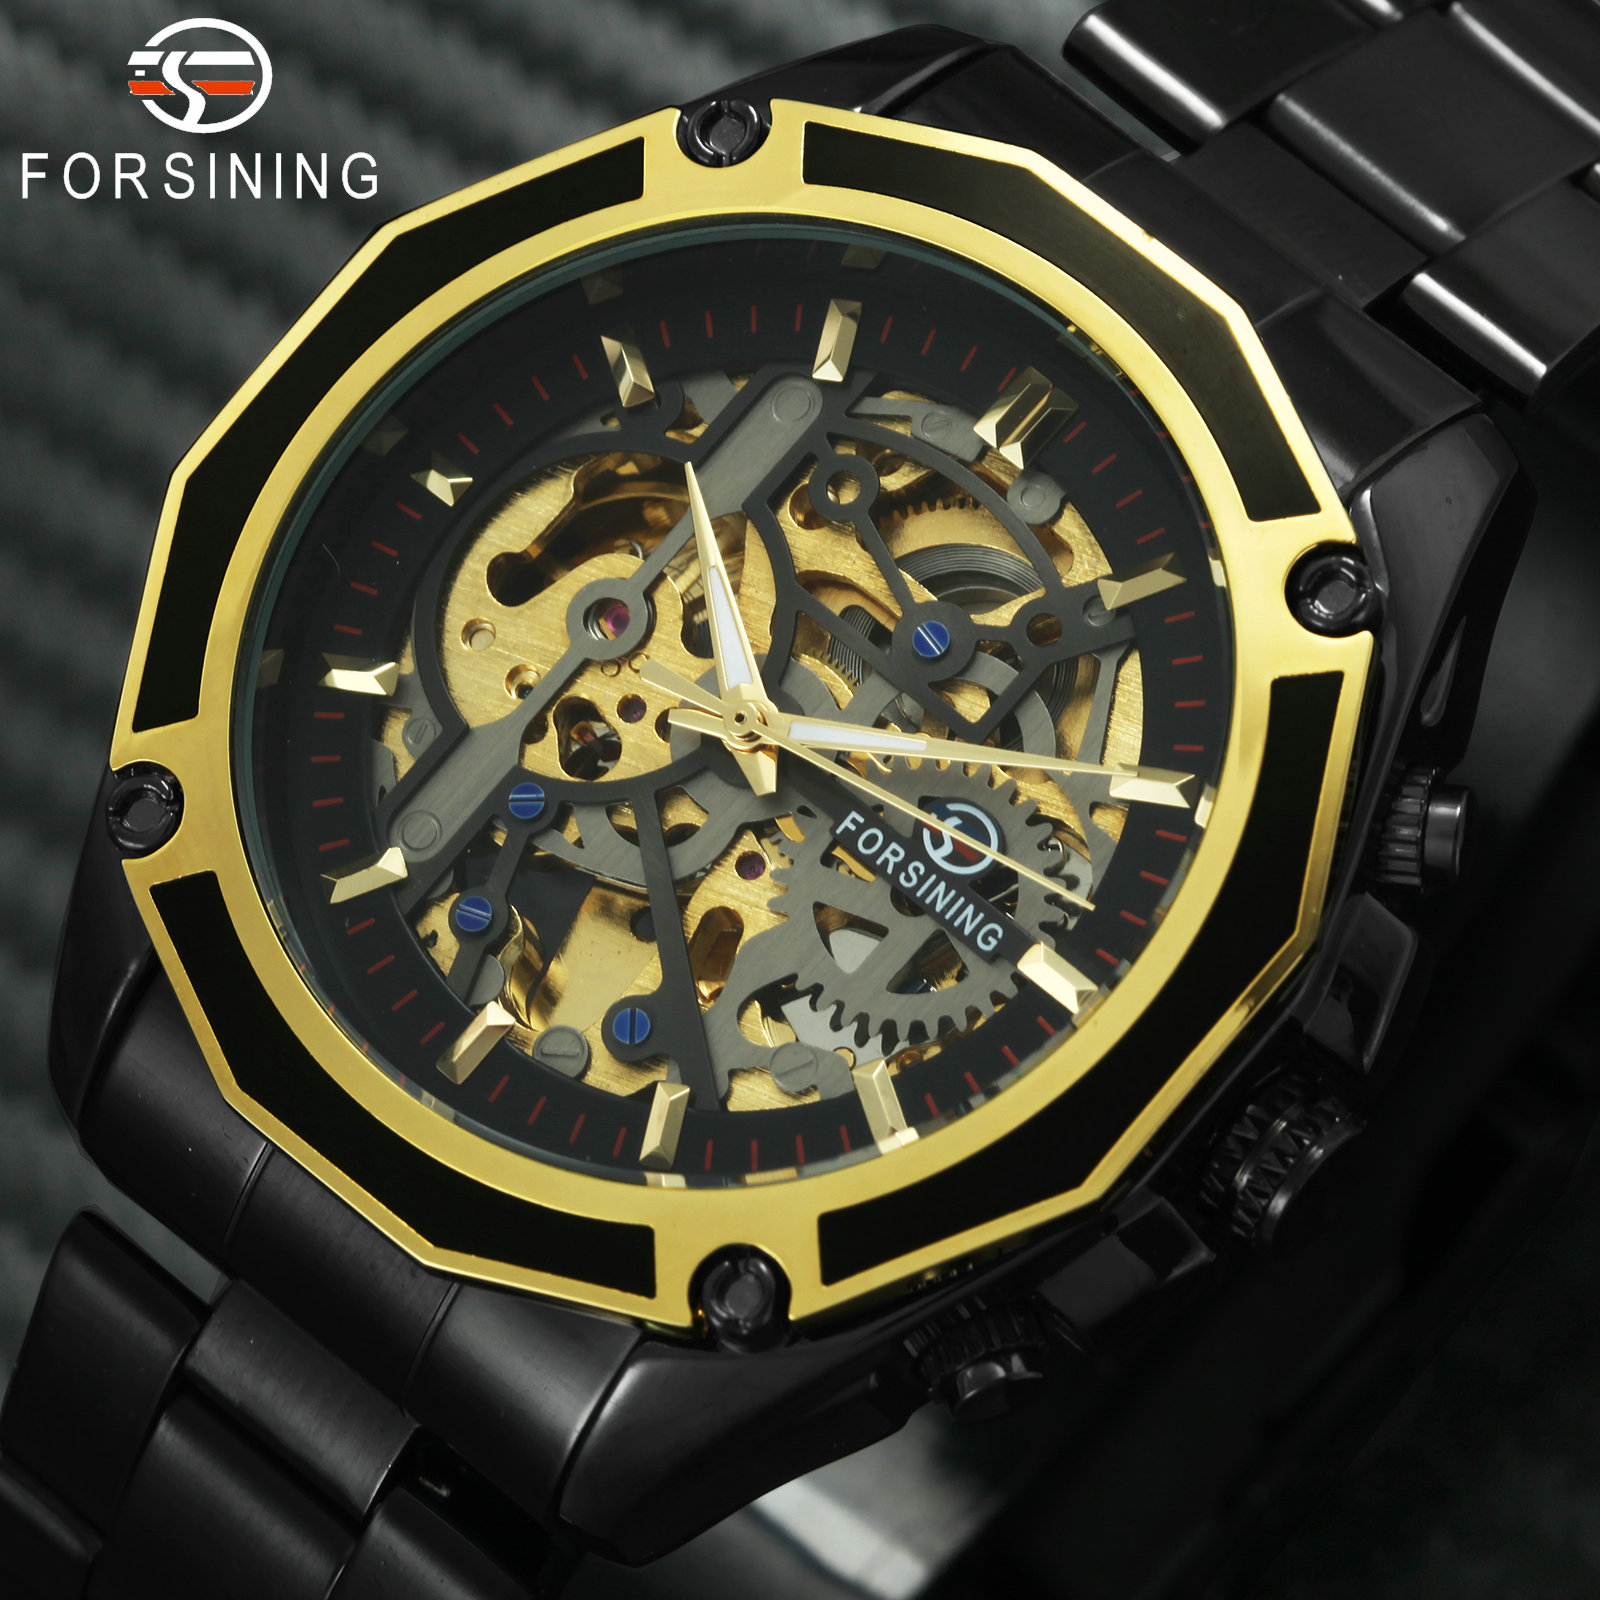 FORSINING Golden Top Brand Luxury Auto Mechanical Watch Men Stainless Steel Strap Skeleton Dial Fashion Business Wristwatches 1